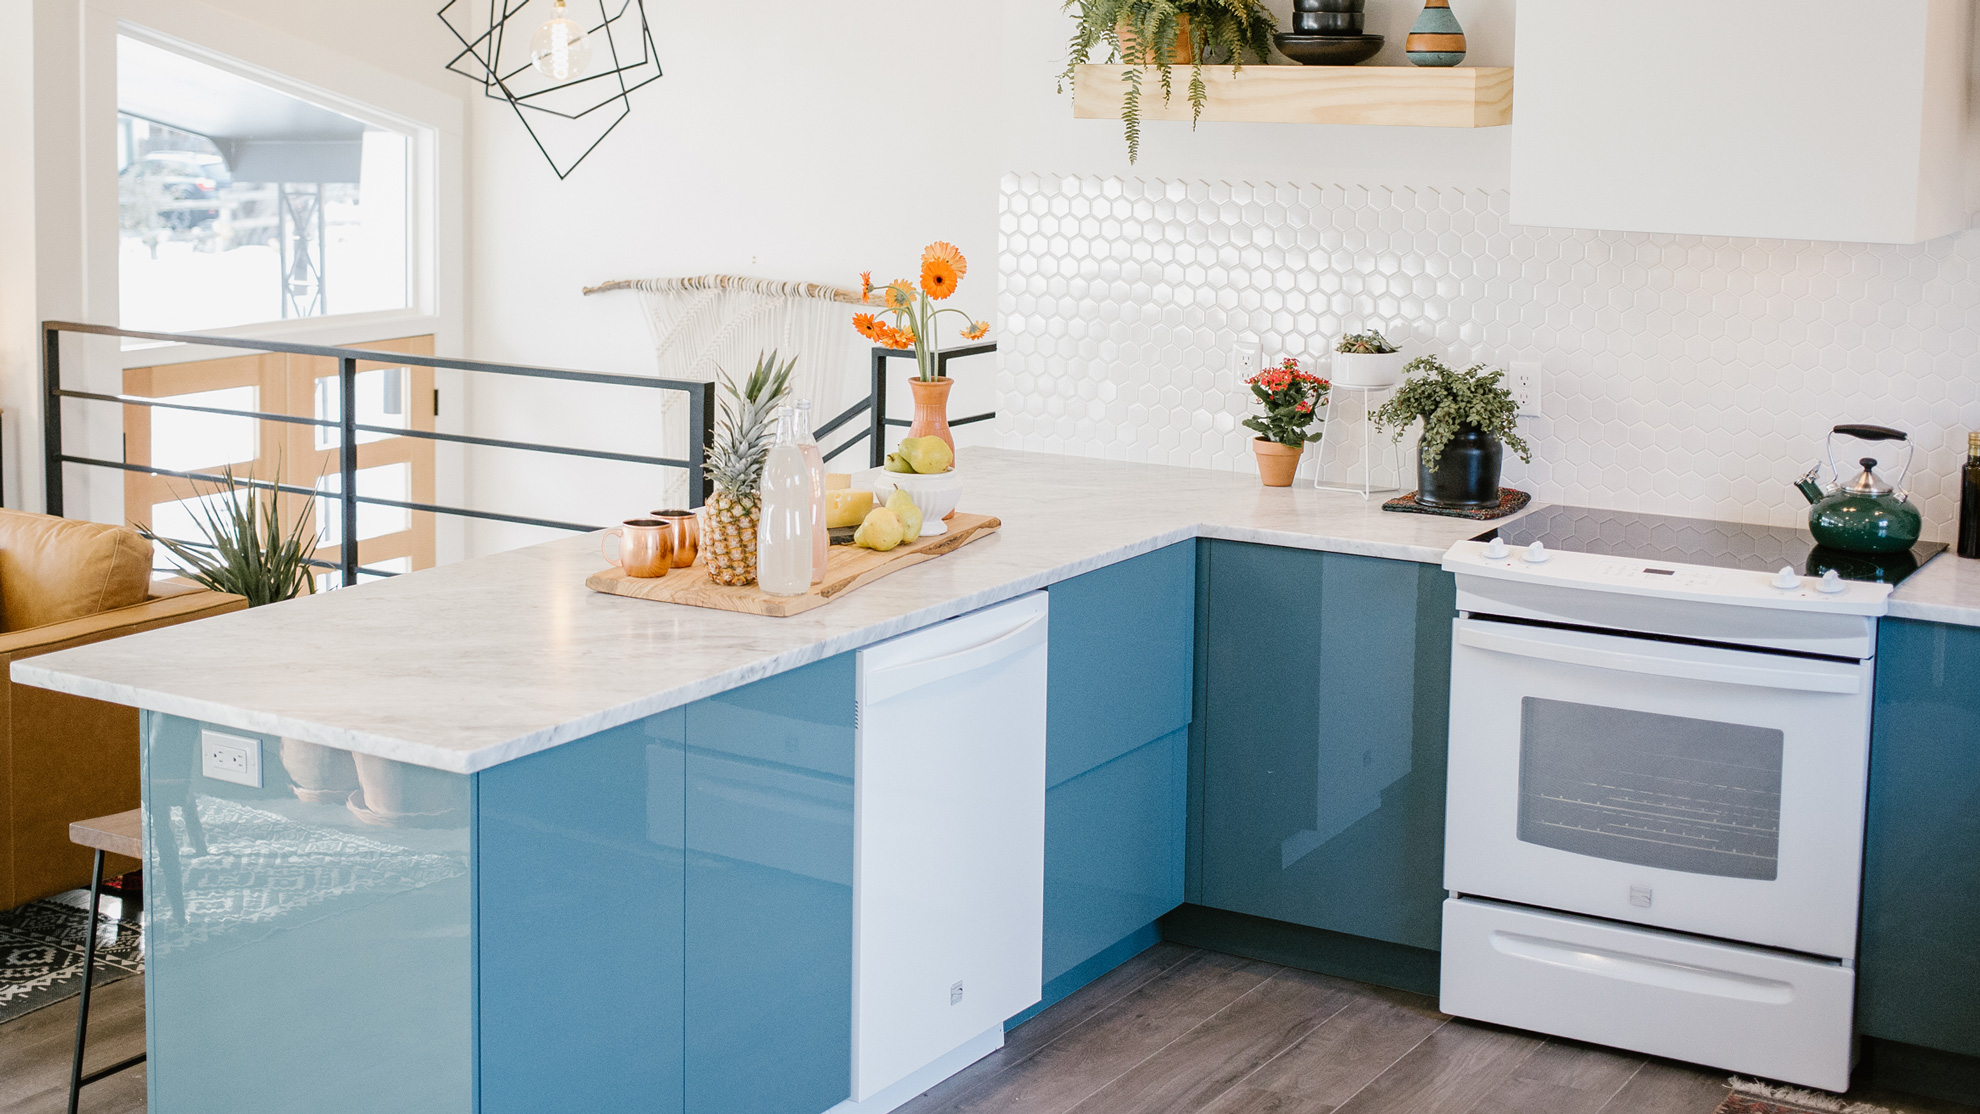 Malad-Kitchen-Entry-After.jpg